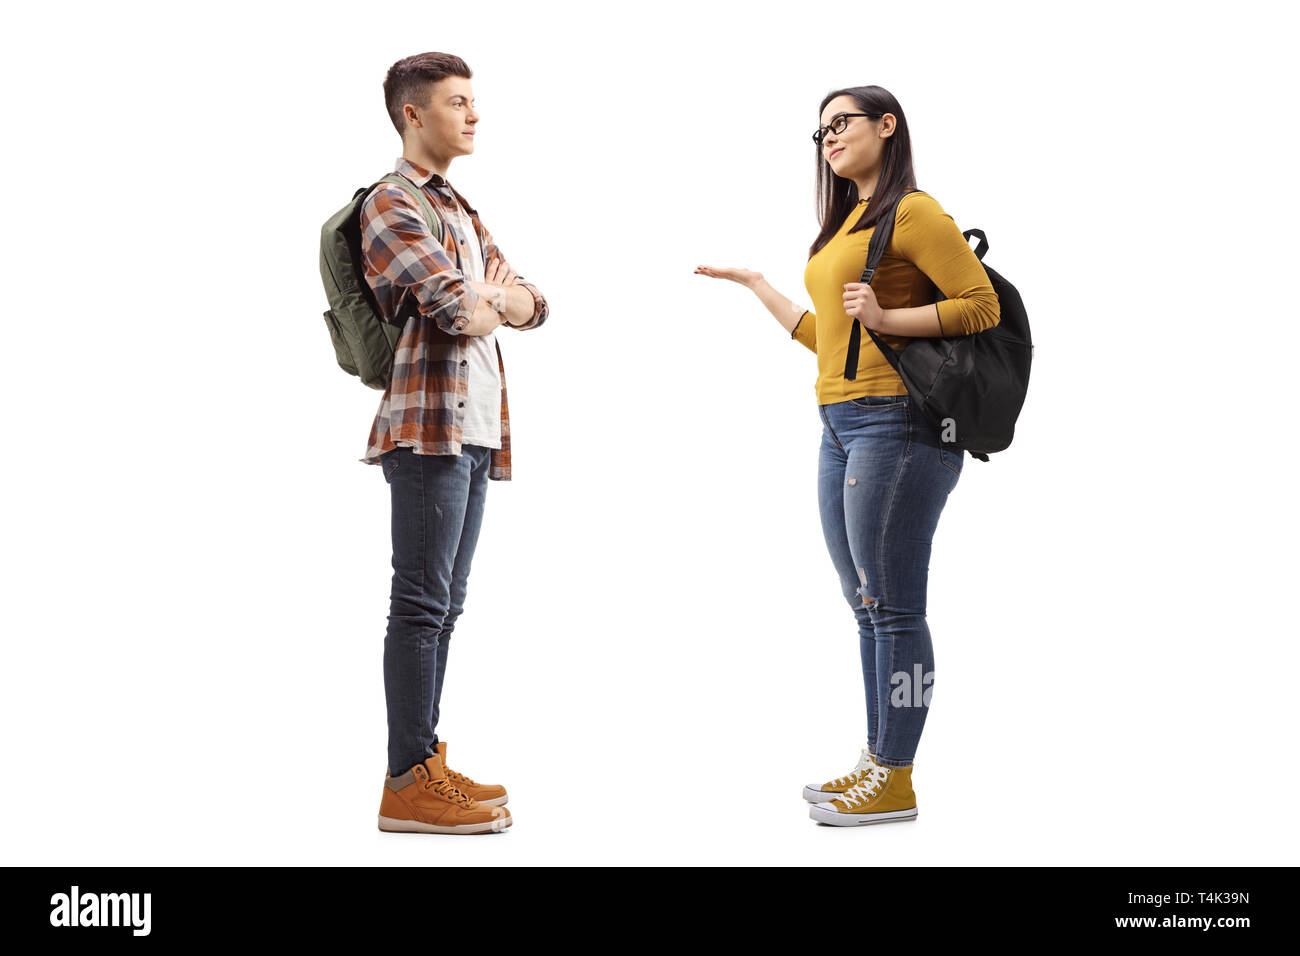 Full length profile shot of female student talking to a male student friend isolated on white background - Stock Image